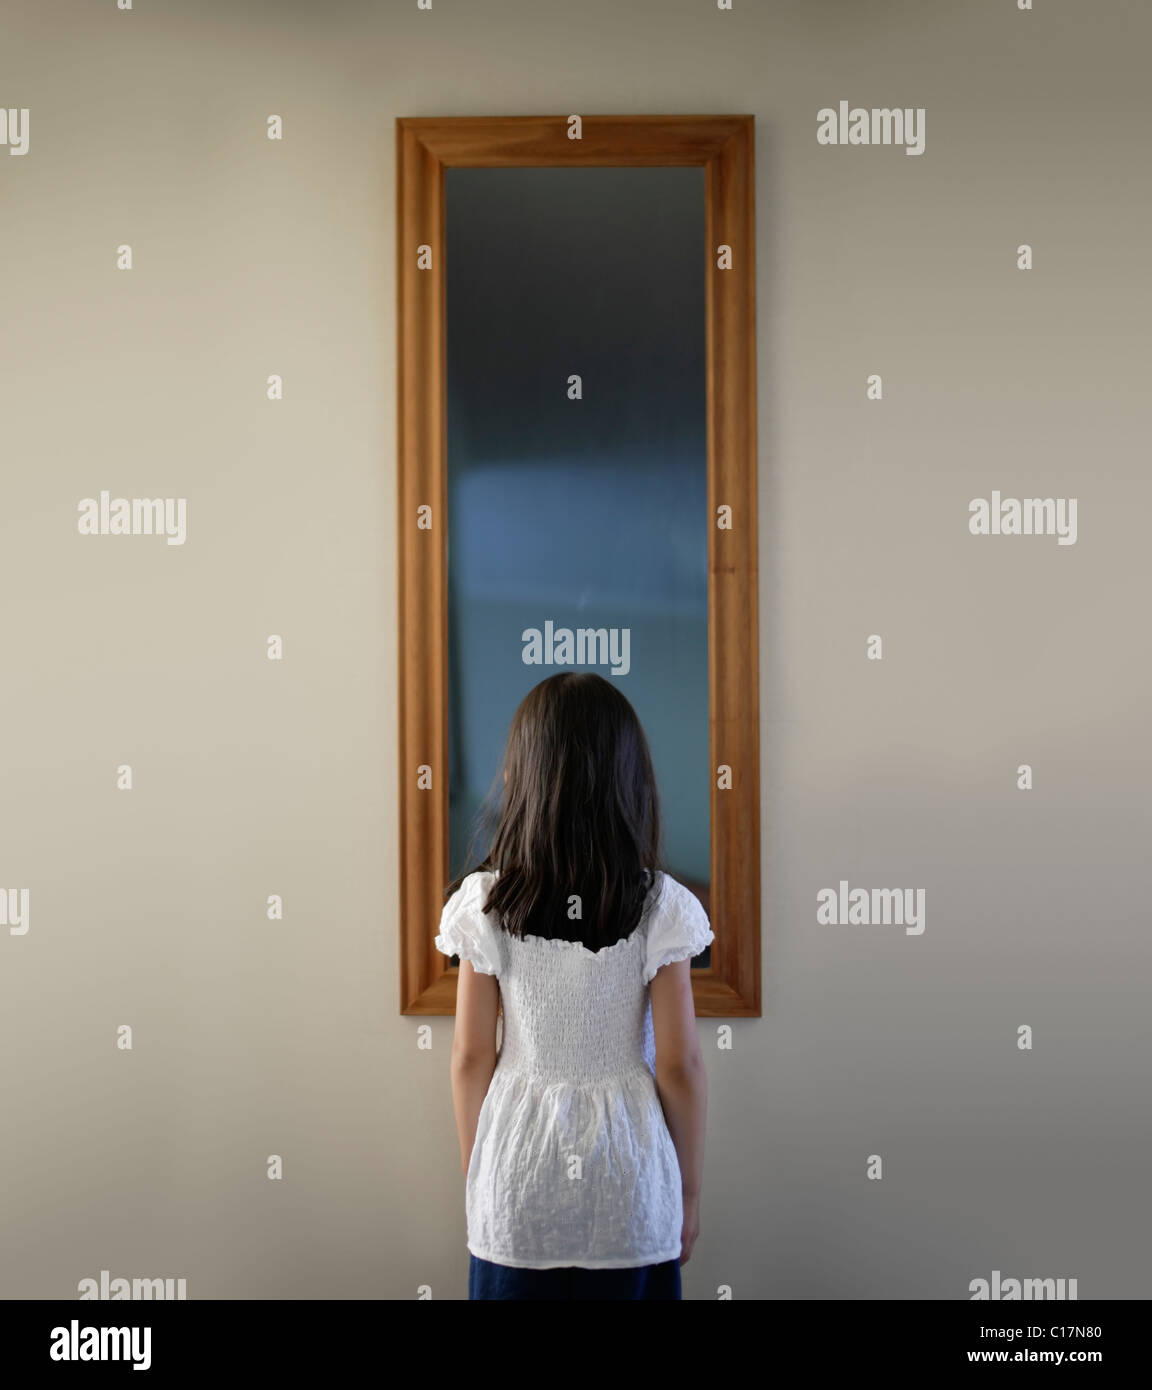 Mirror mirror, on the wall - Stock Image